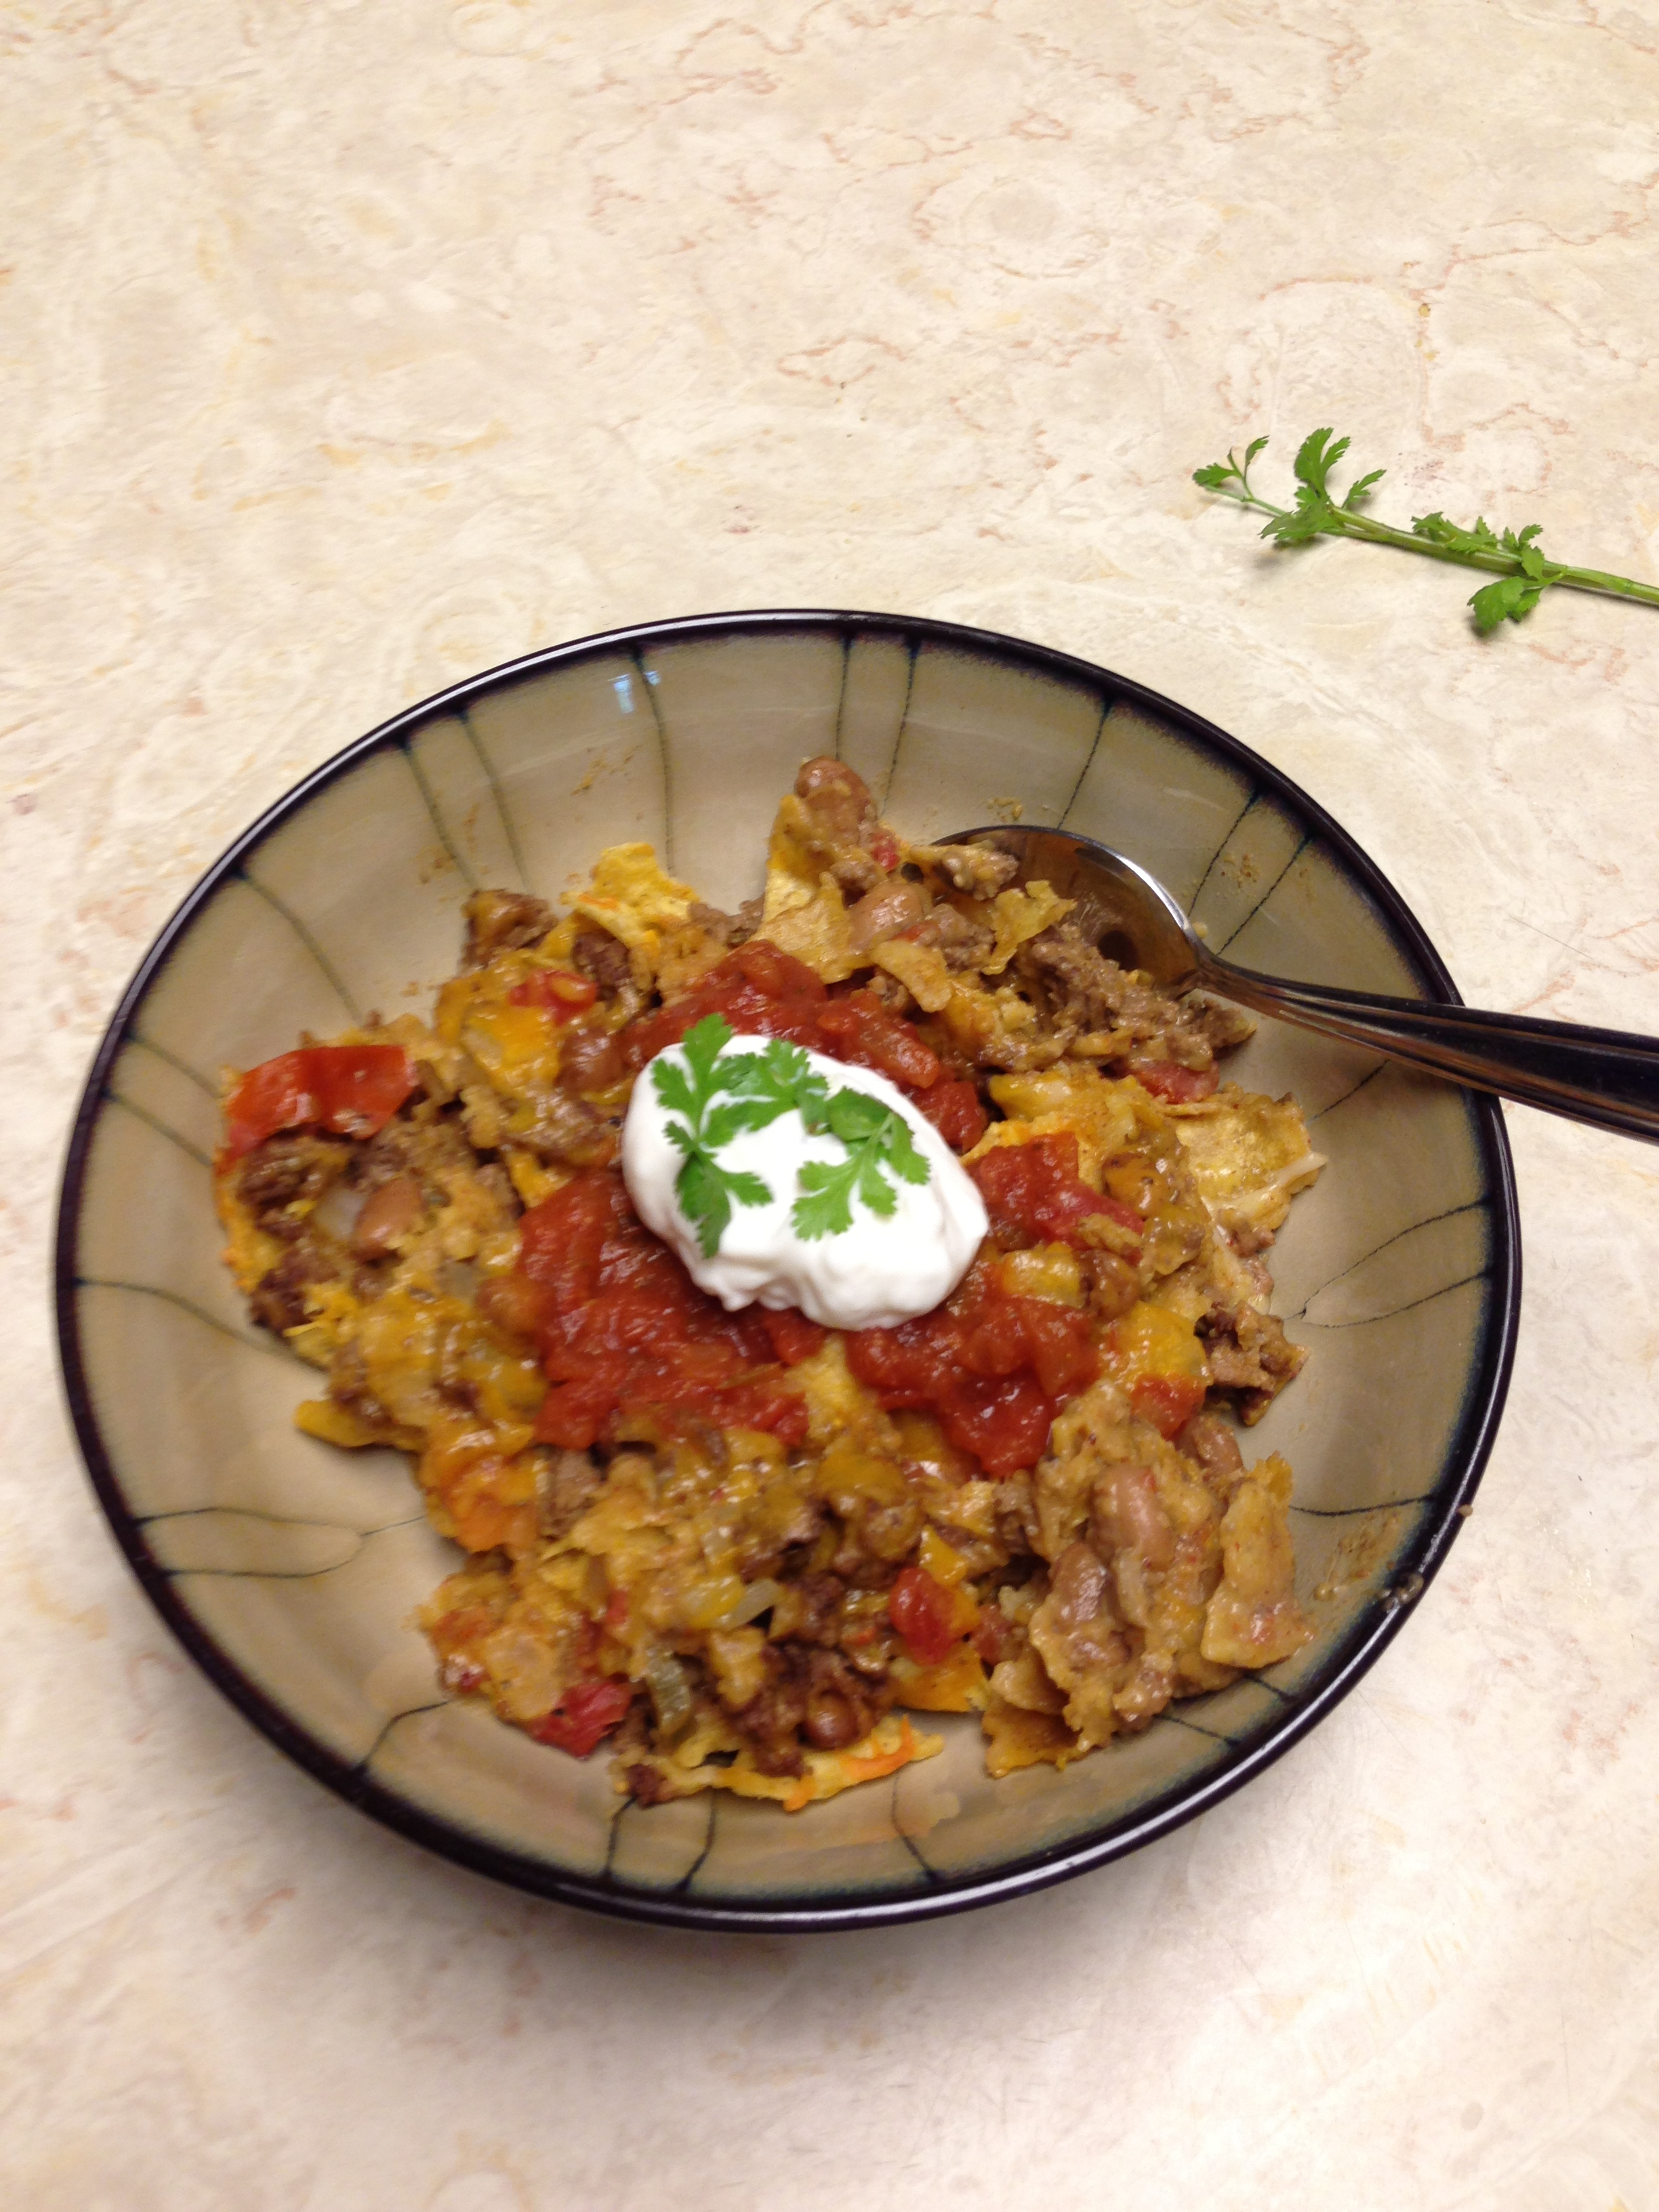 Rons easy low sodium mexican casserole i help c low sodium rons easy mexican casserole forumfinder Gallery